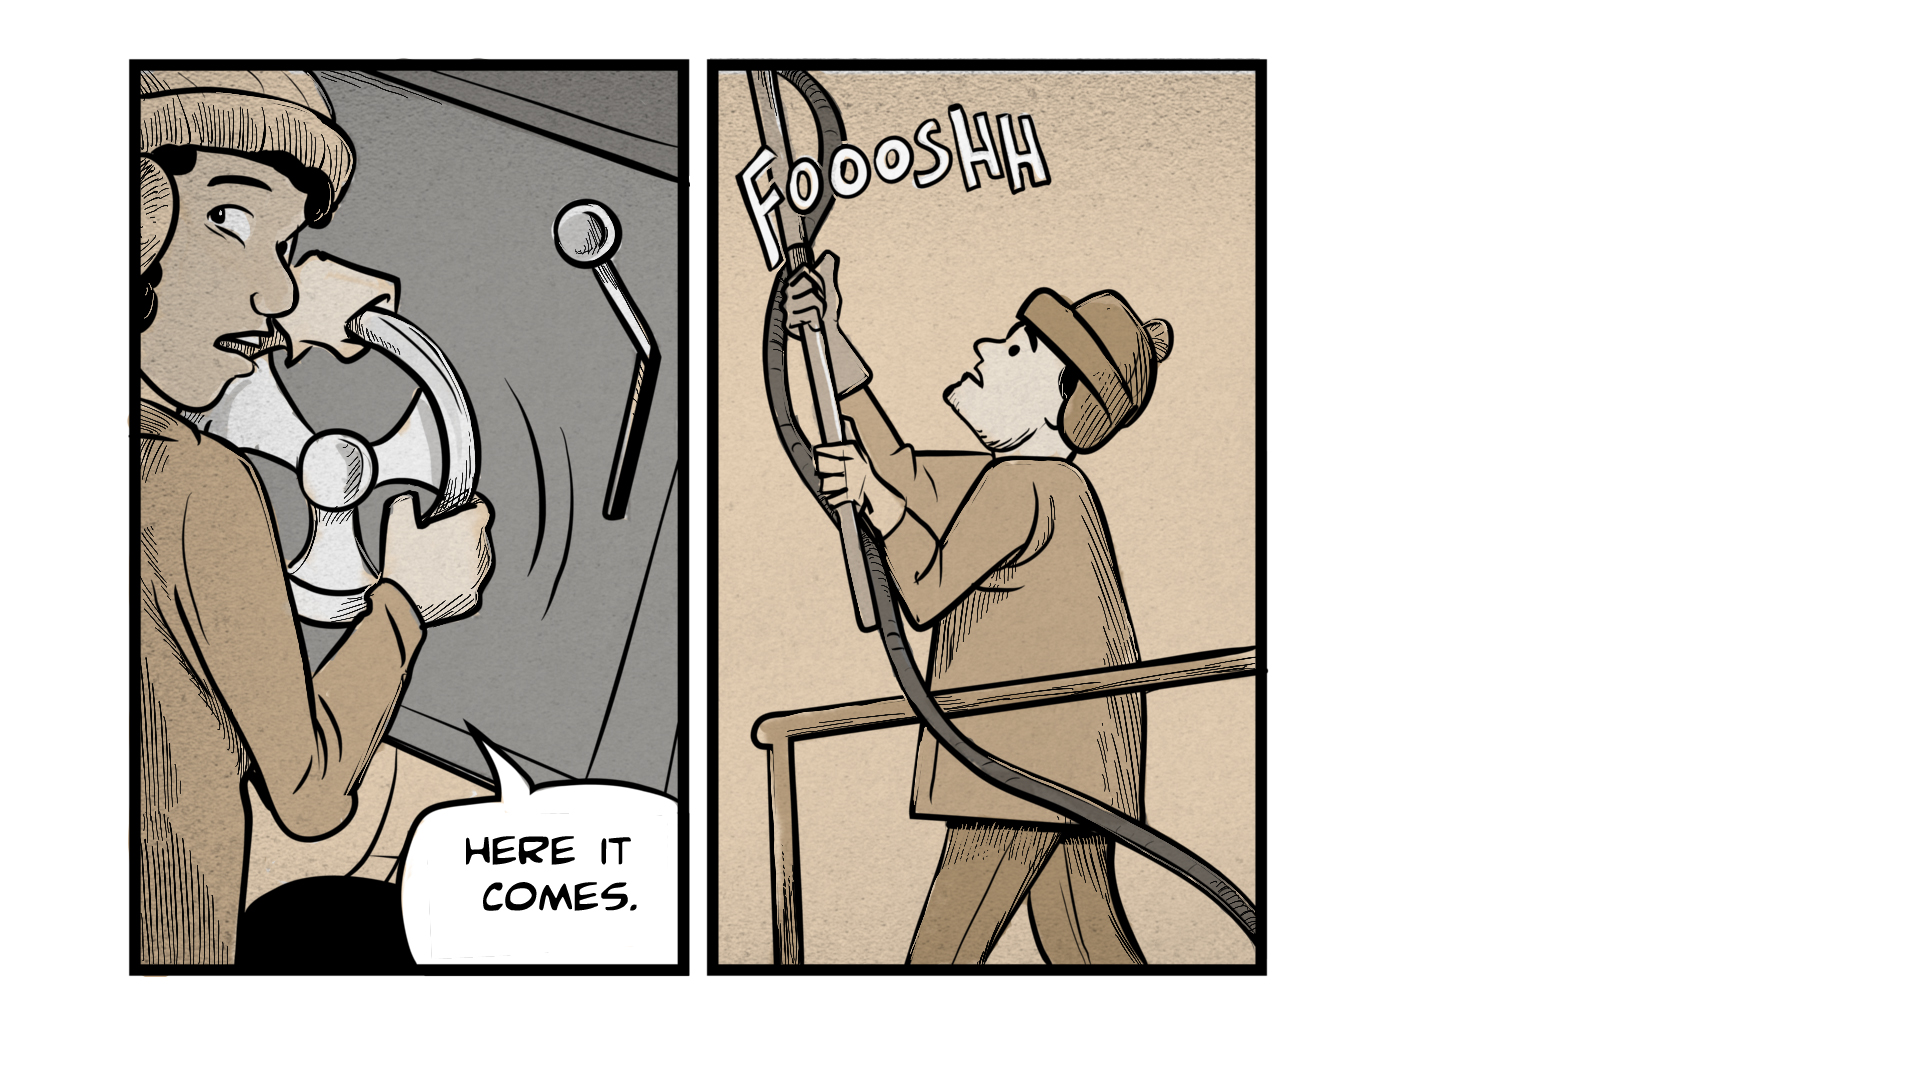 "The middle frame shows a man in a winter hat and gloves holding a pole attached to a hose. The hose makes a ""foooshh"" sound."